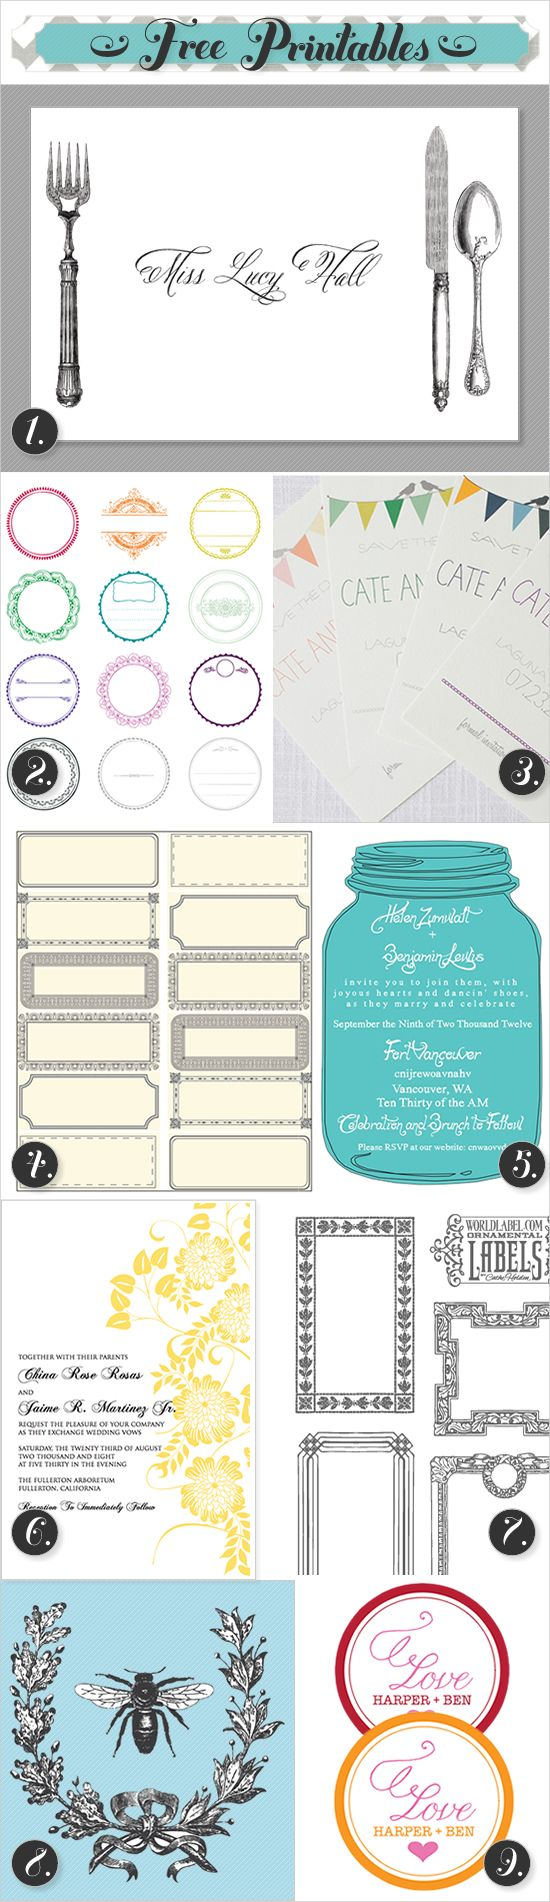 Pl clipart community printable PRINTABLES 73 on printable invitations